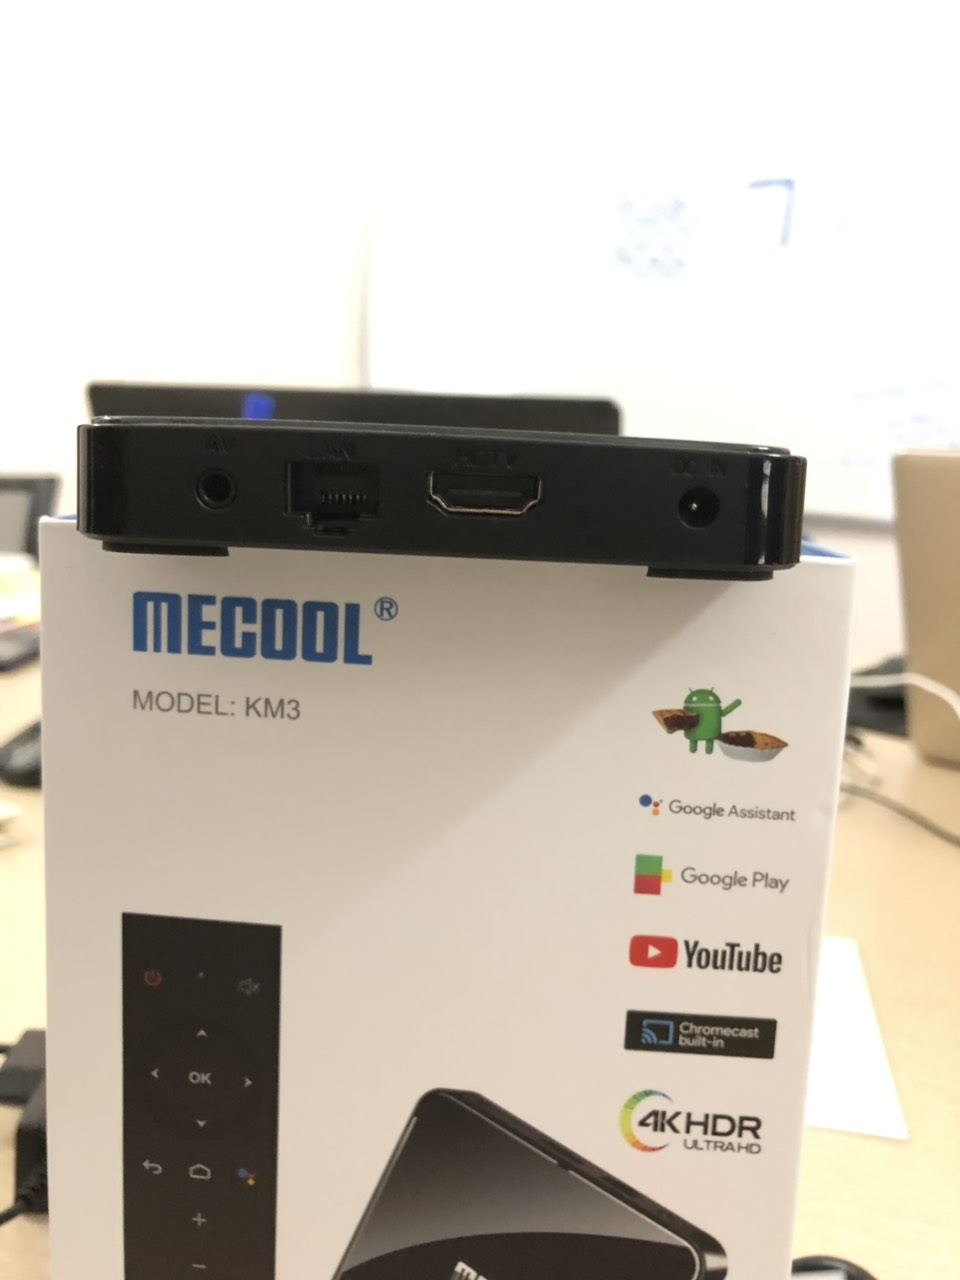 android tv box mecool km3, smart new